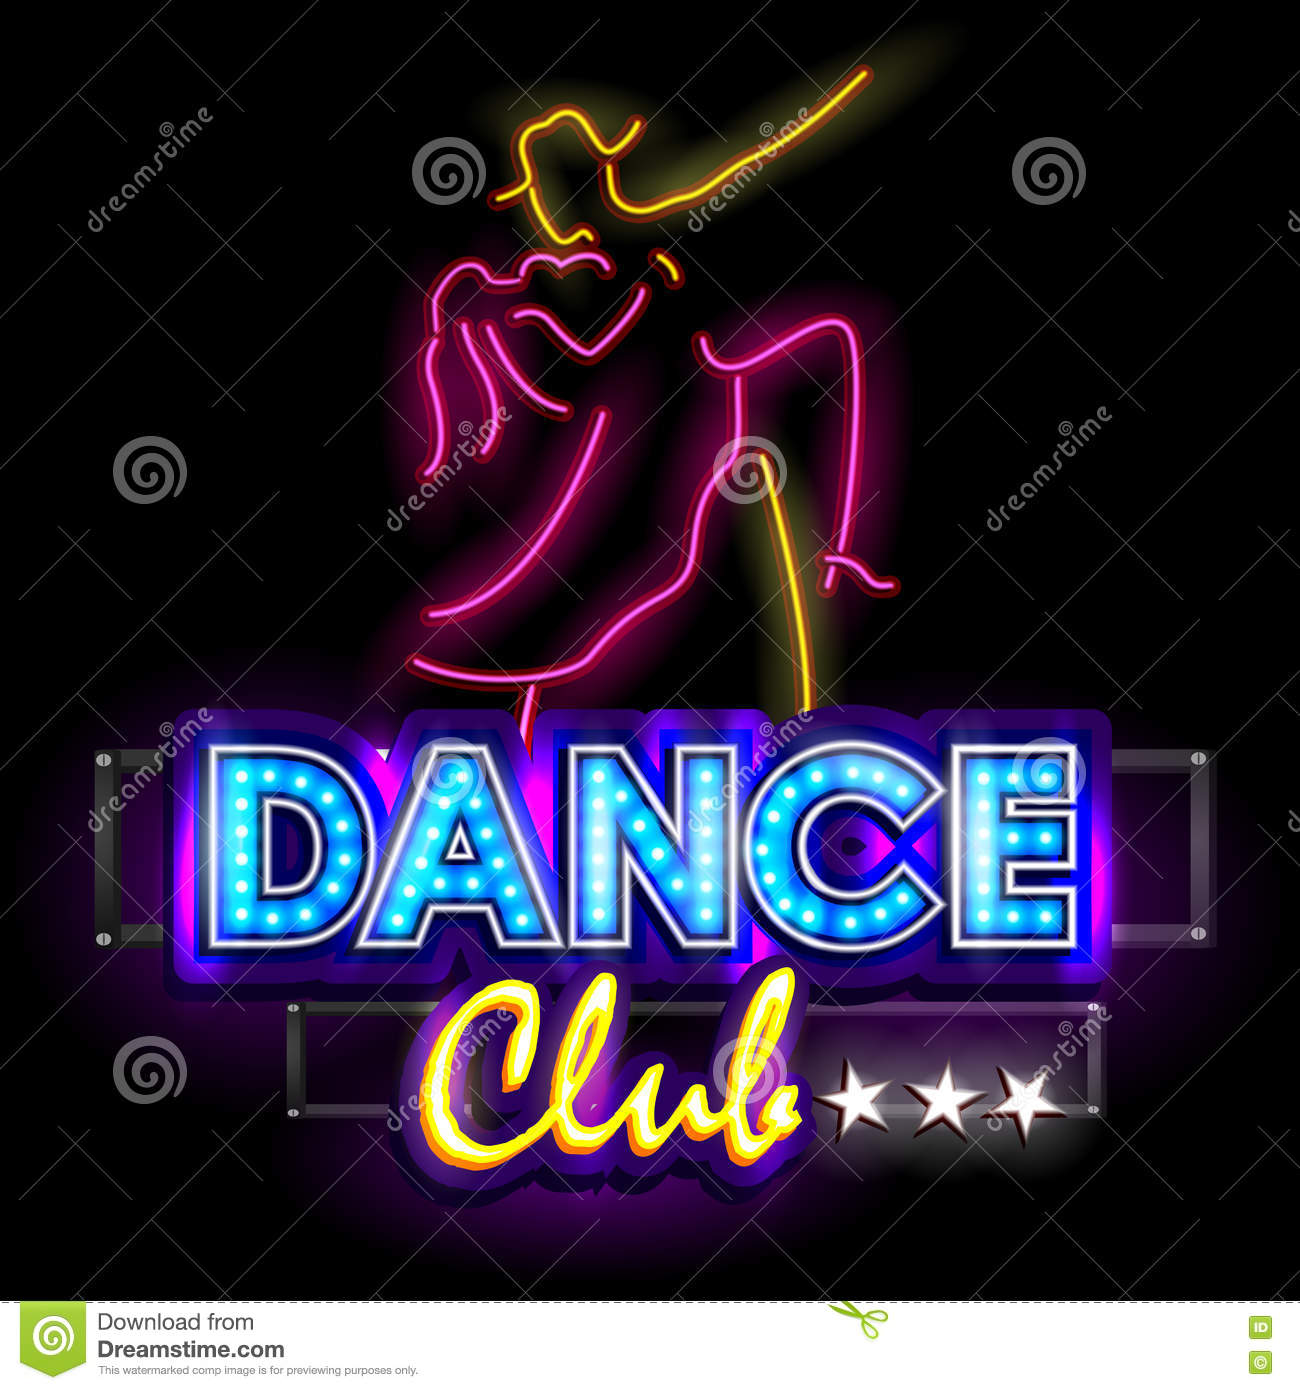 Image Gallery neon lights club dance